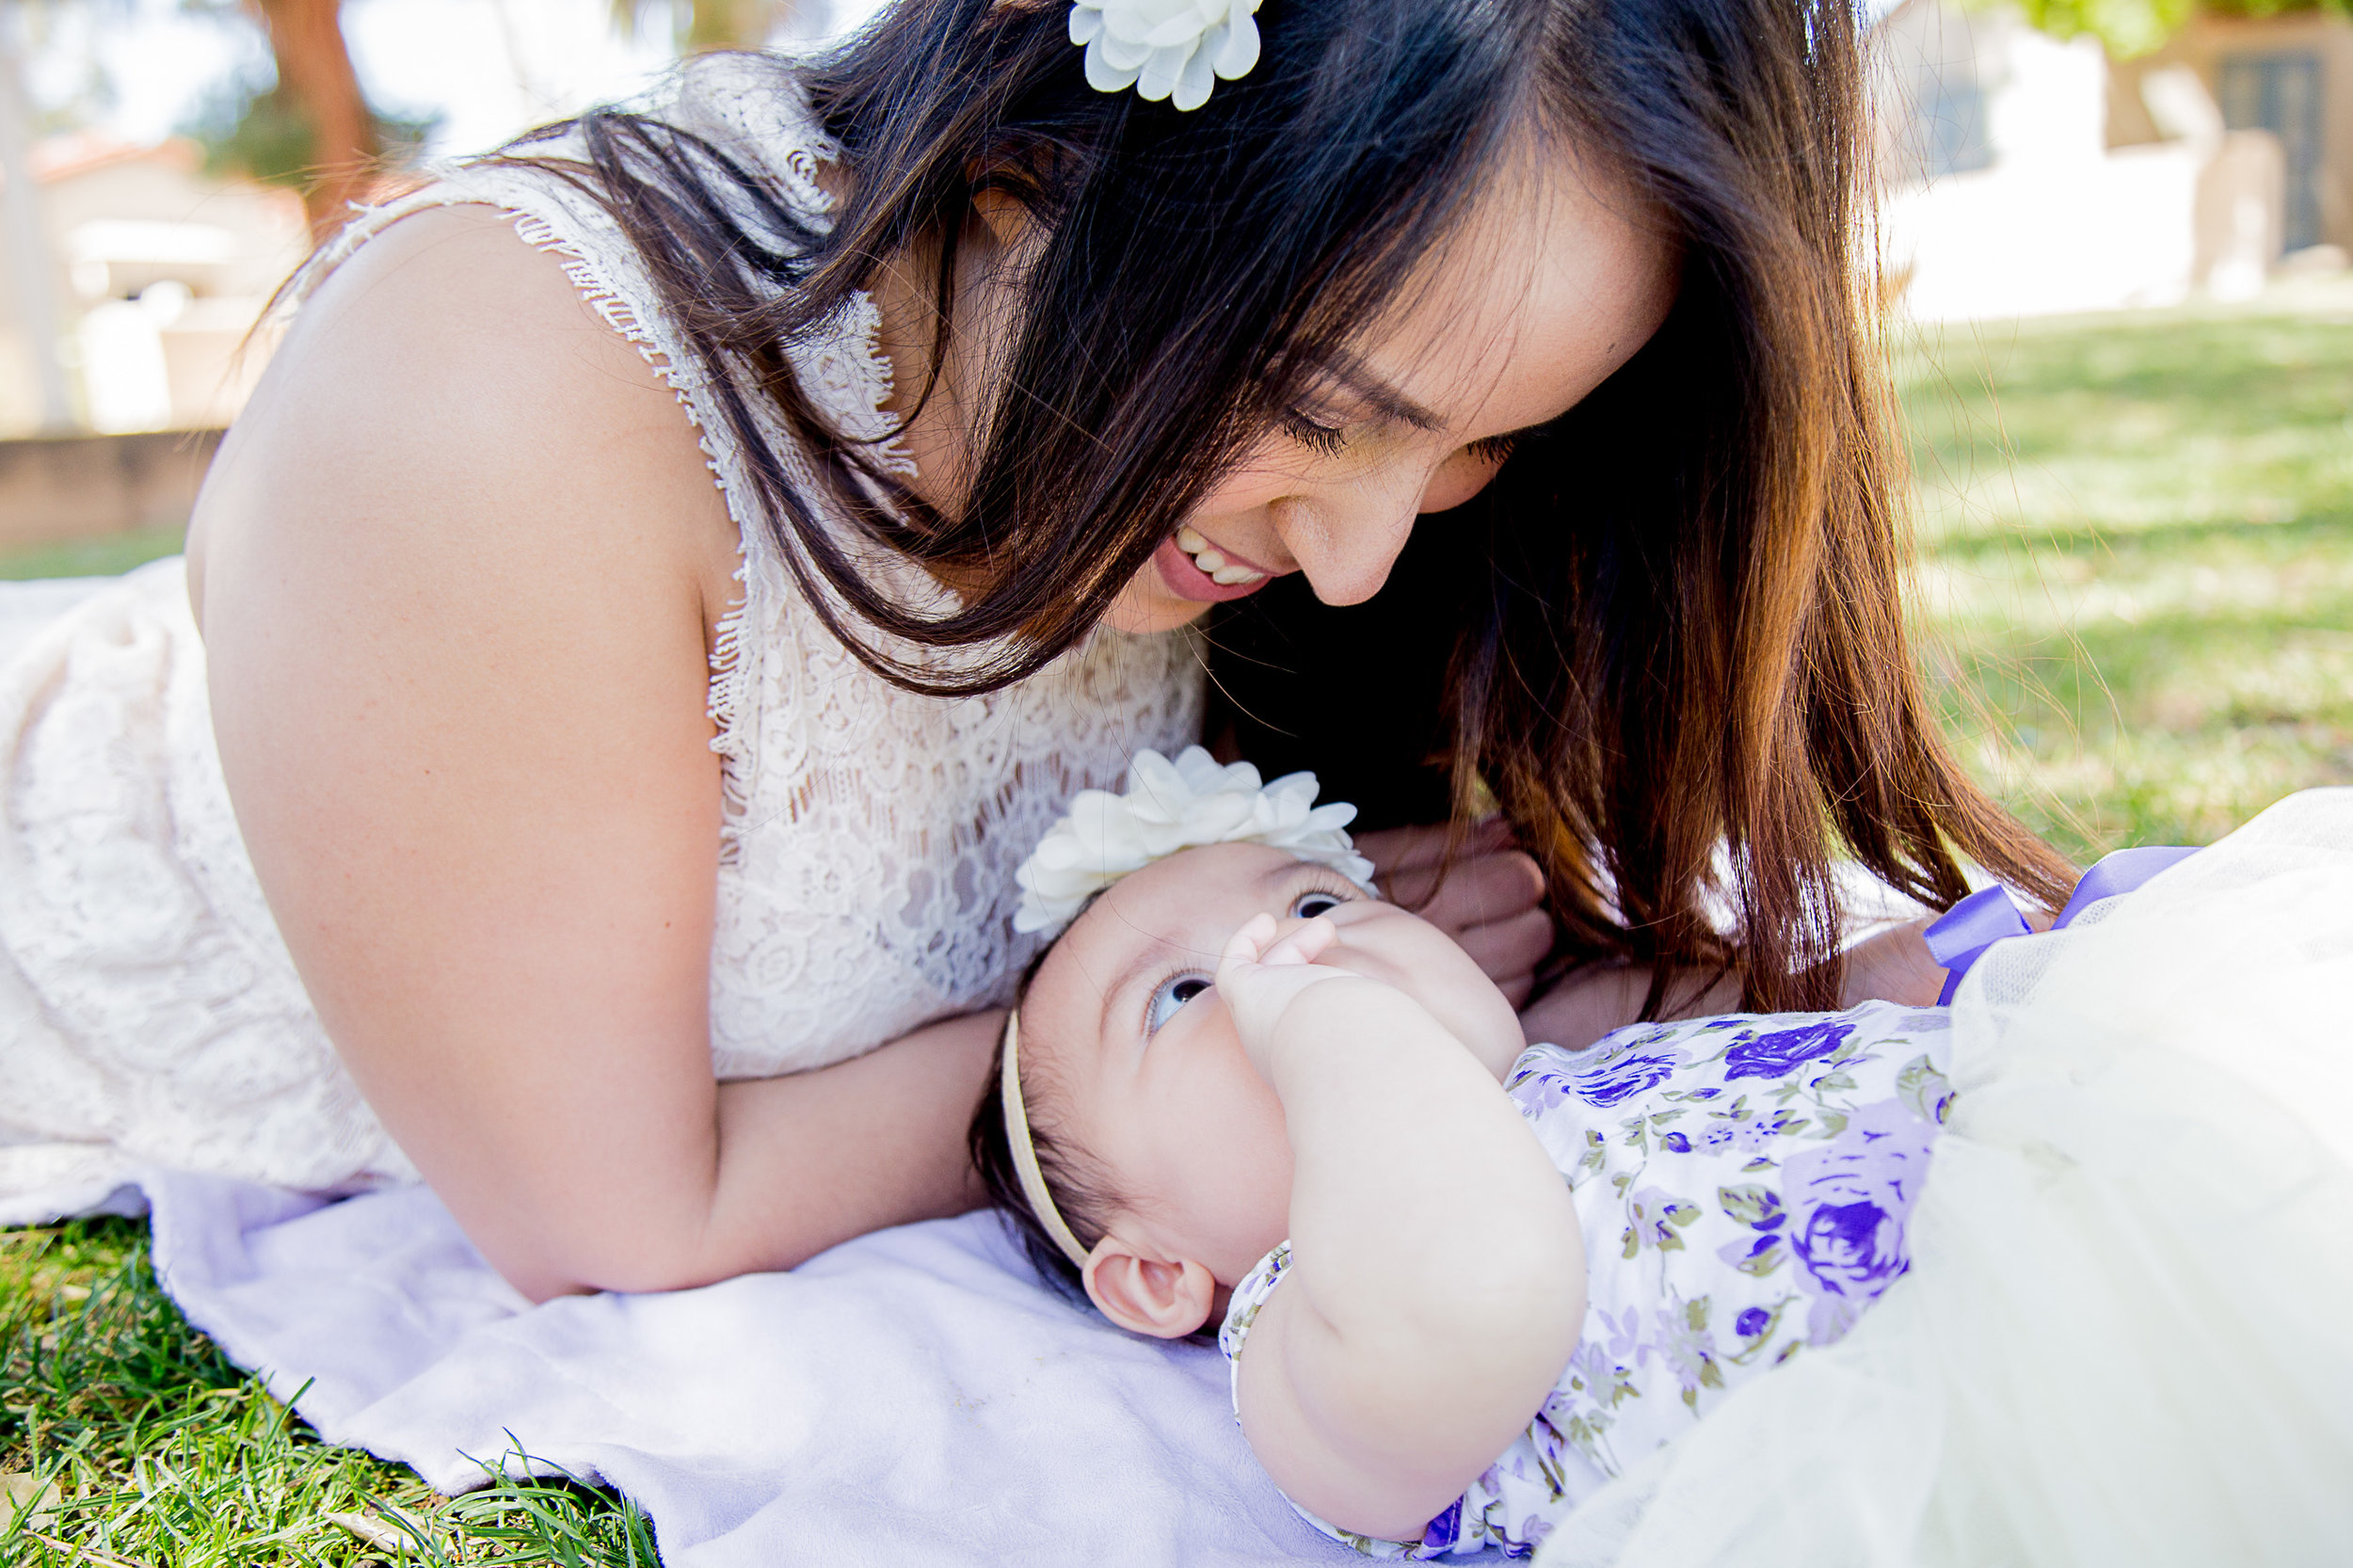 mommy-and-me-balboa-park-wild-flowers-spring (106 of 136).jpg